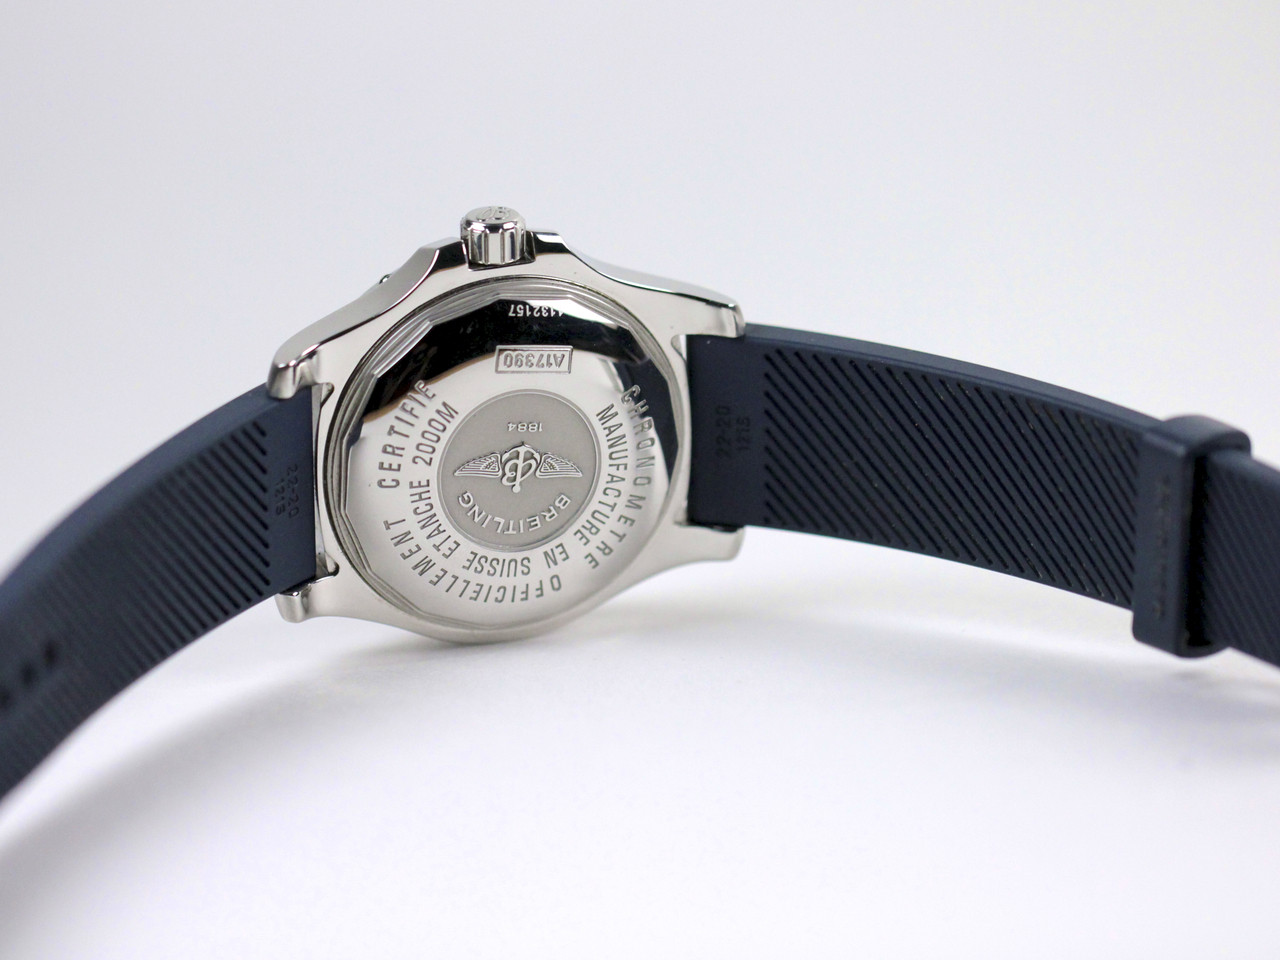 Case Back - Pre-Owned Breitling Watch - Superocean Steelfish Blue A17390 - www.Legendoftime.com - Chicago Watch Center